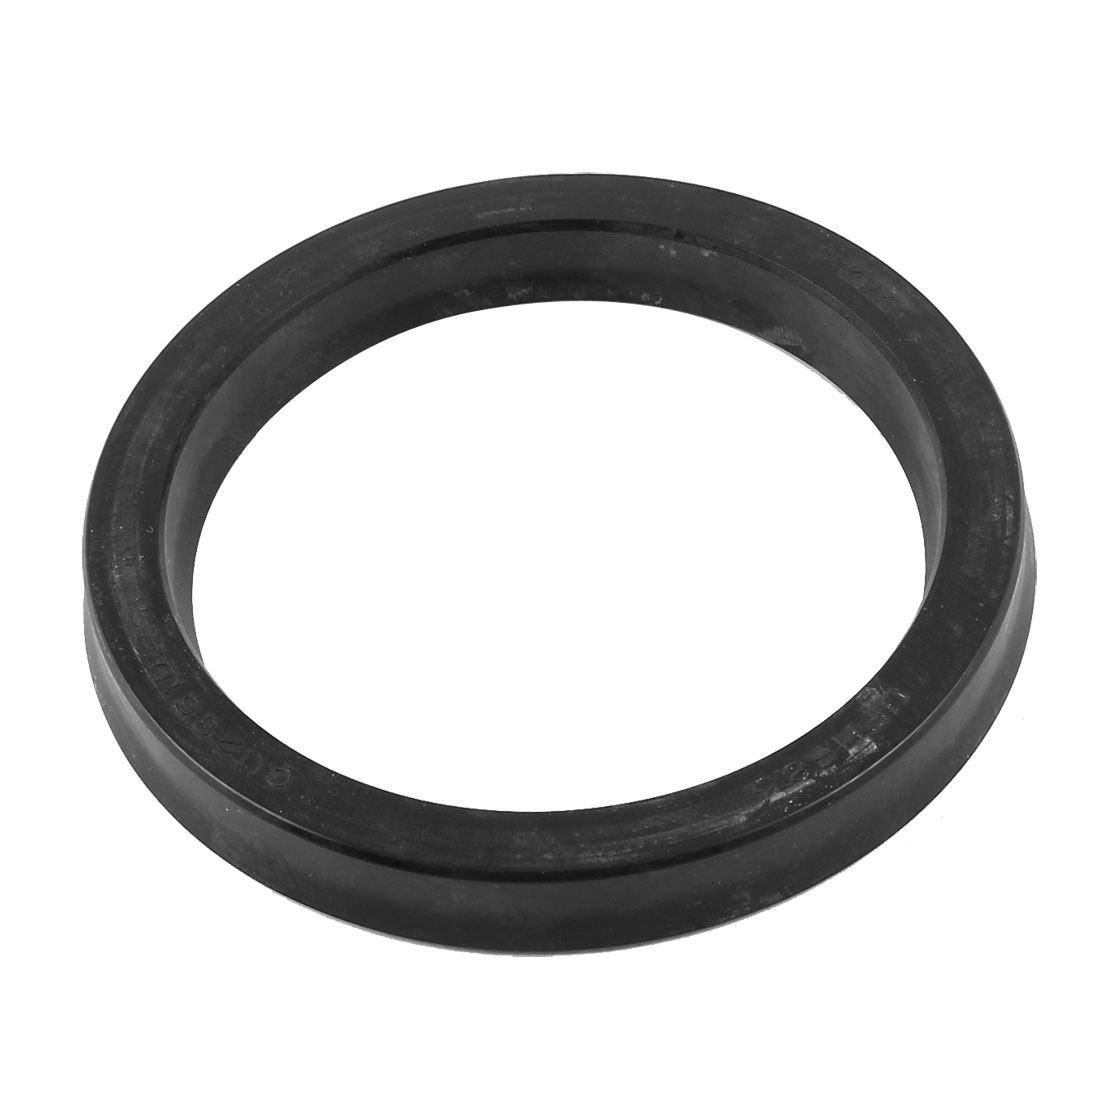 Unique Bargains Mechanical Rotary Shaft Rubber Oil Seal Ring Black 105mm x 85mm x 12mm